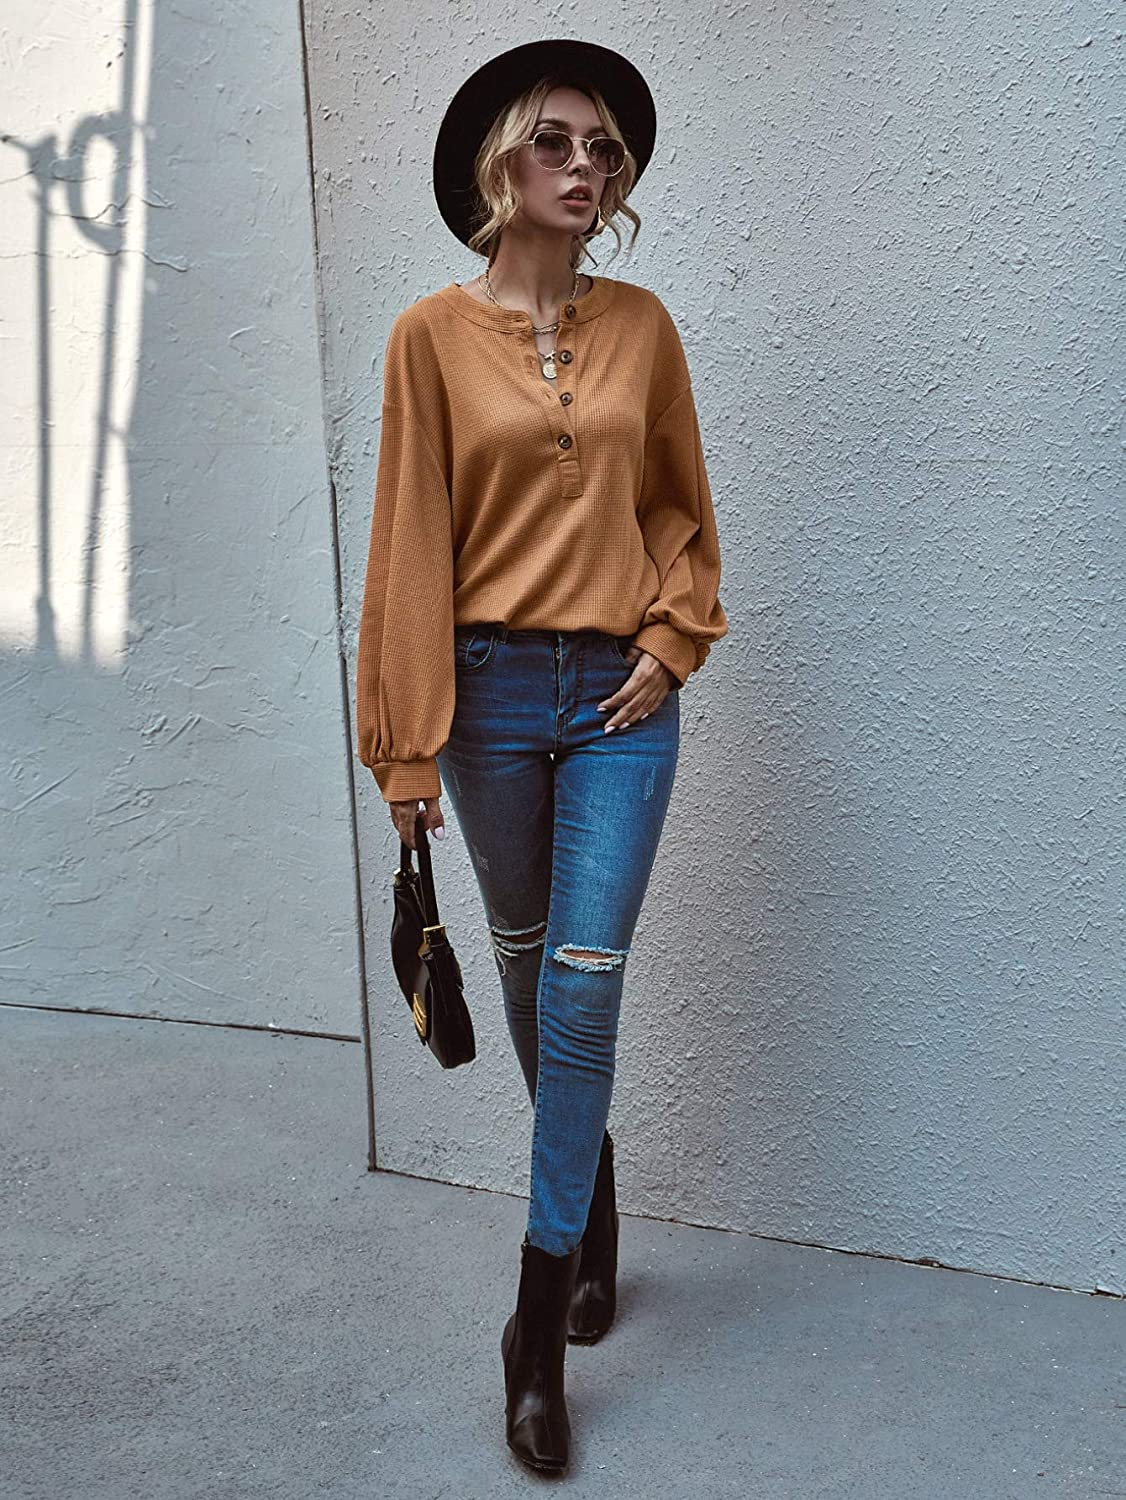 Romwe Women's Waffle Knit T Shirts Long Sleeve Button Front Loose Tee Tops